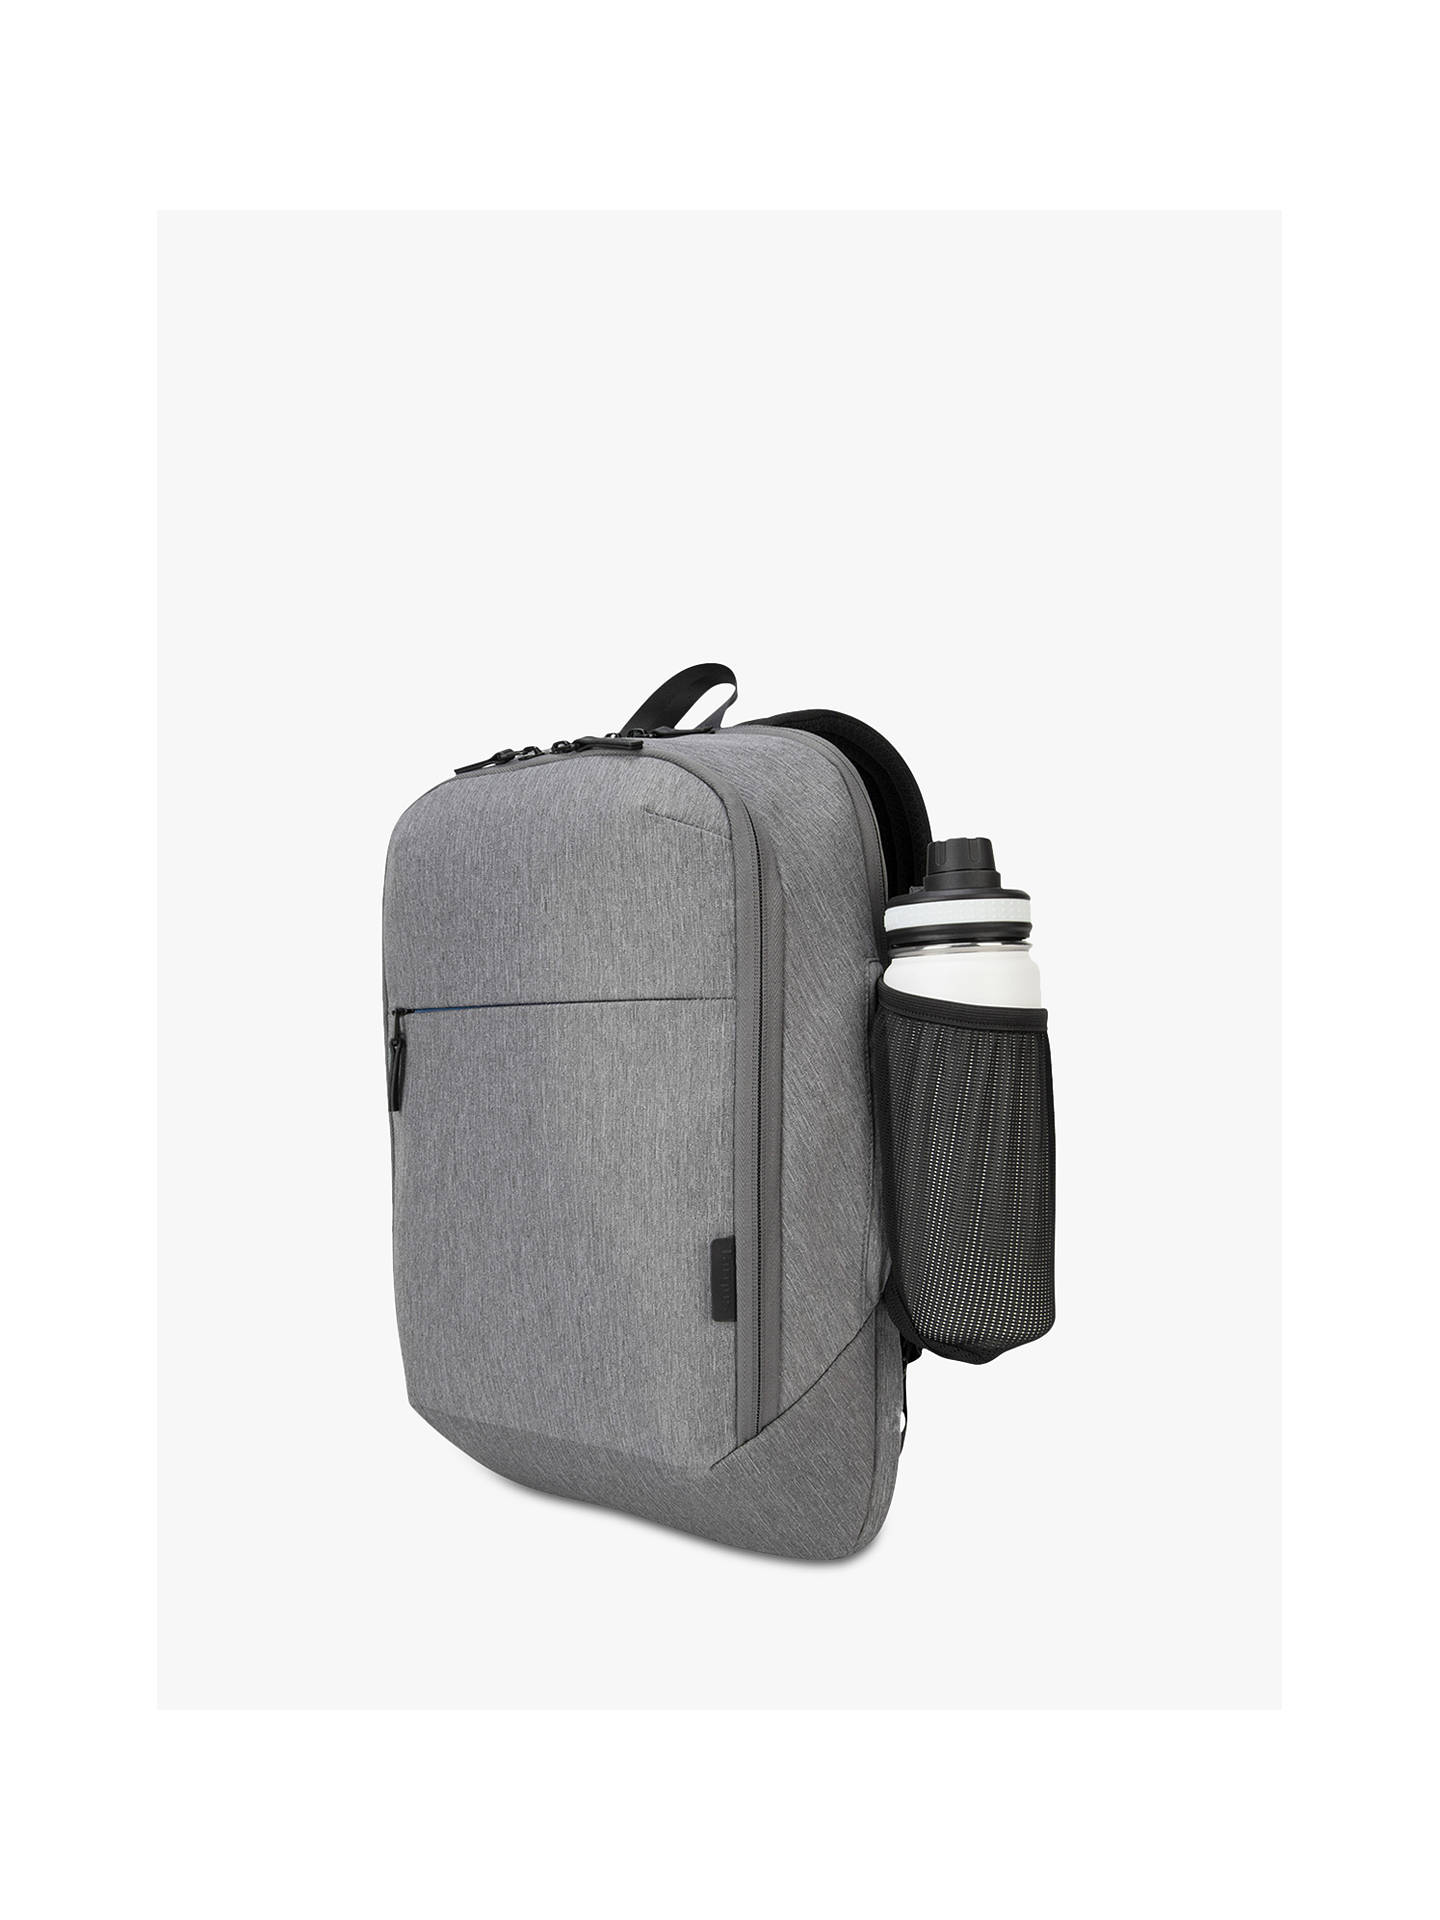 "Buy Targus CityLite Convertible Backpack / Briefcase for Laptops up to 15.6"", Grey Online at johnlewis.com"